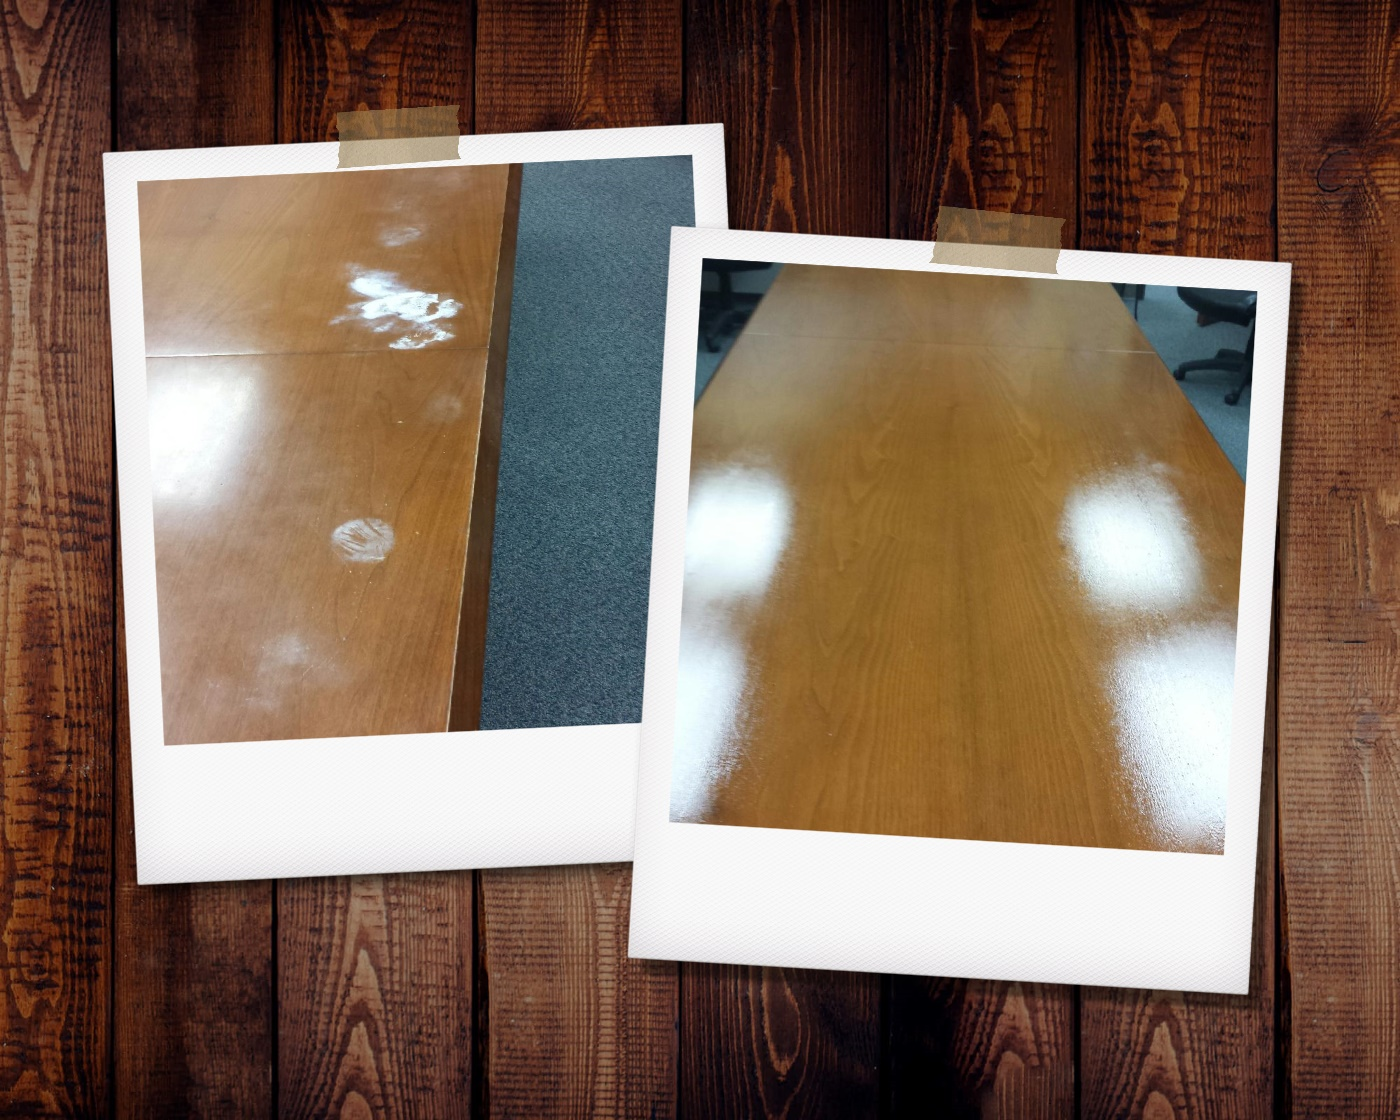 Water Ring Damage Conference Table